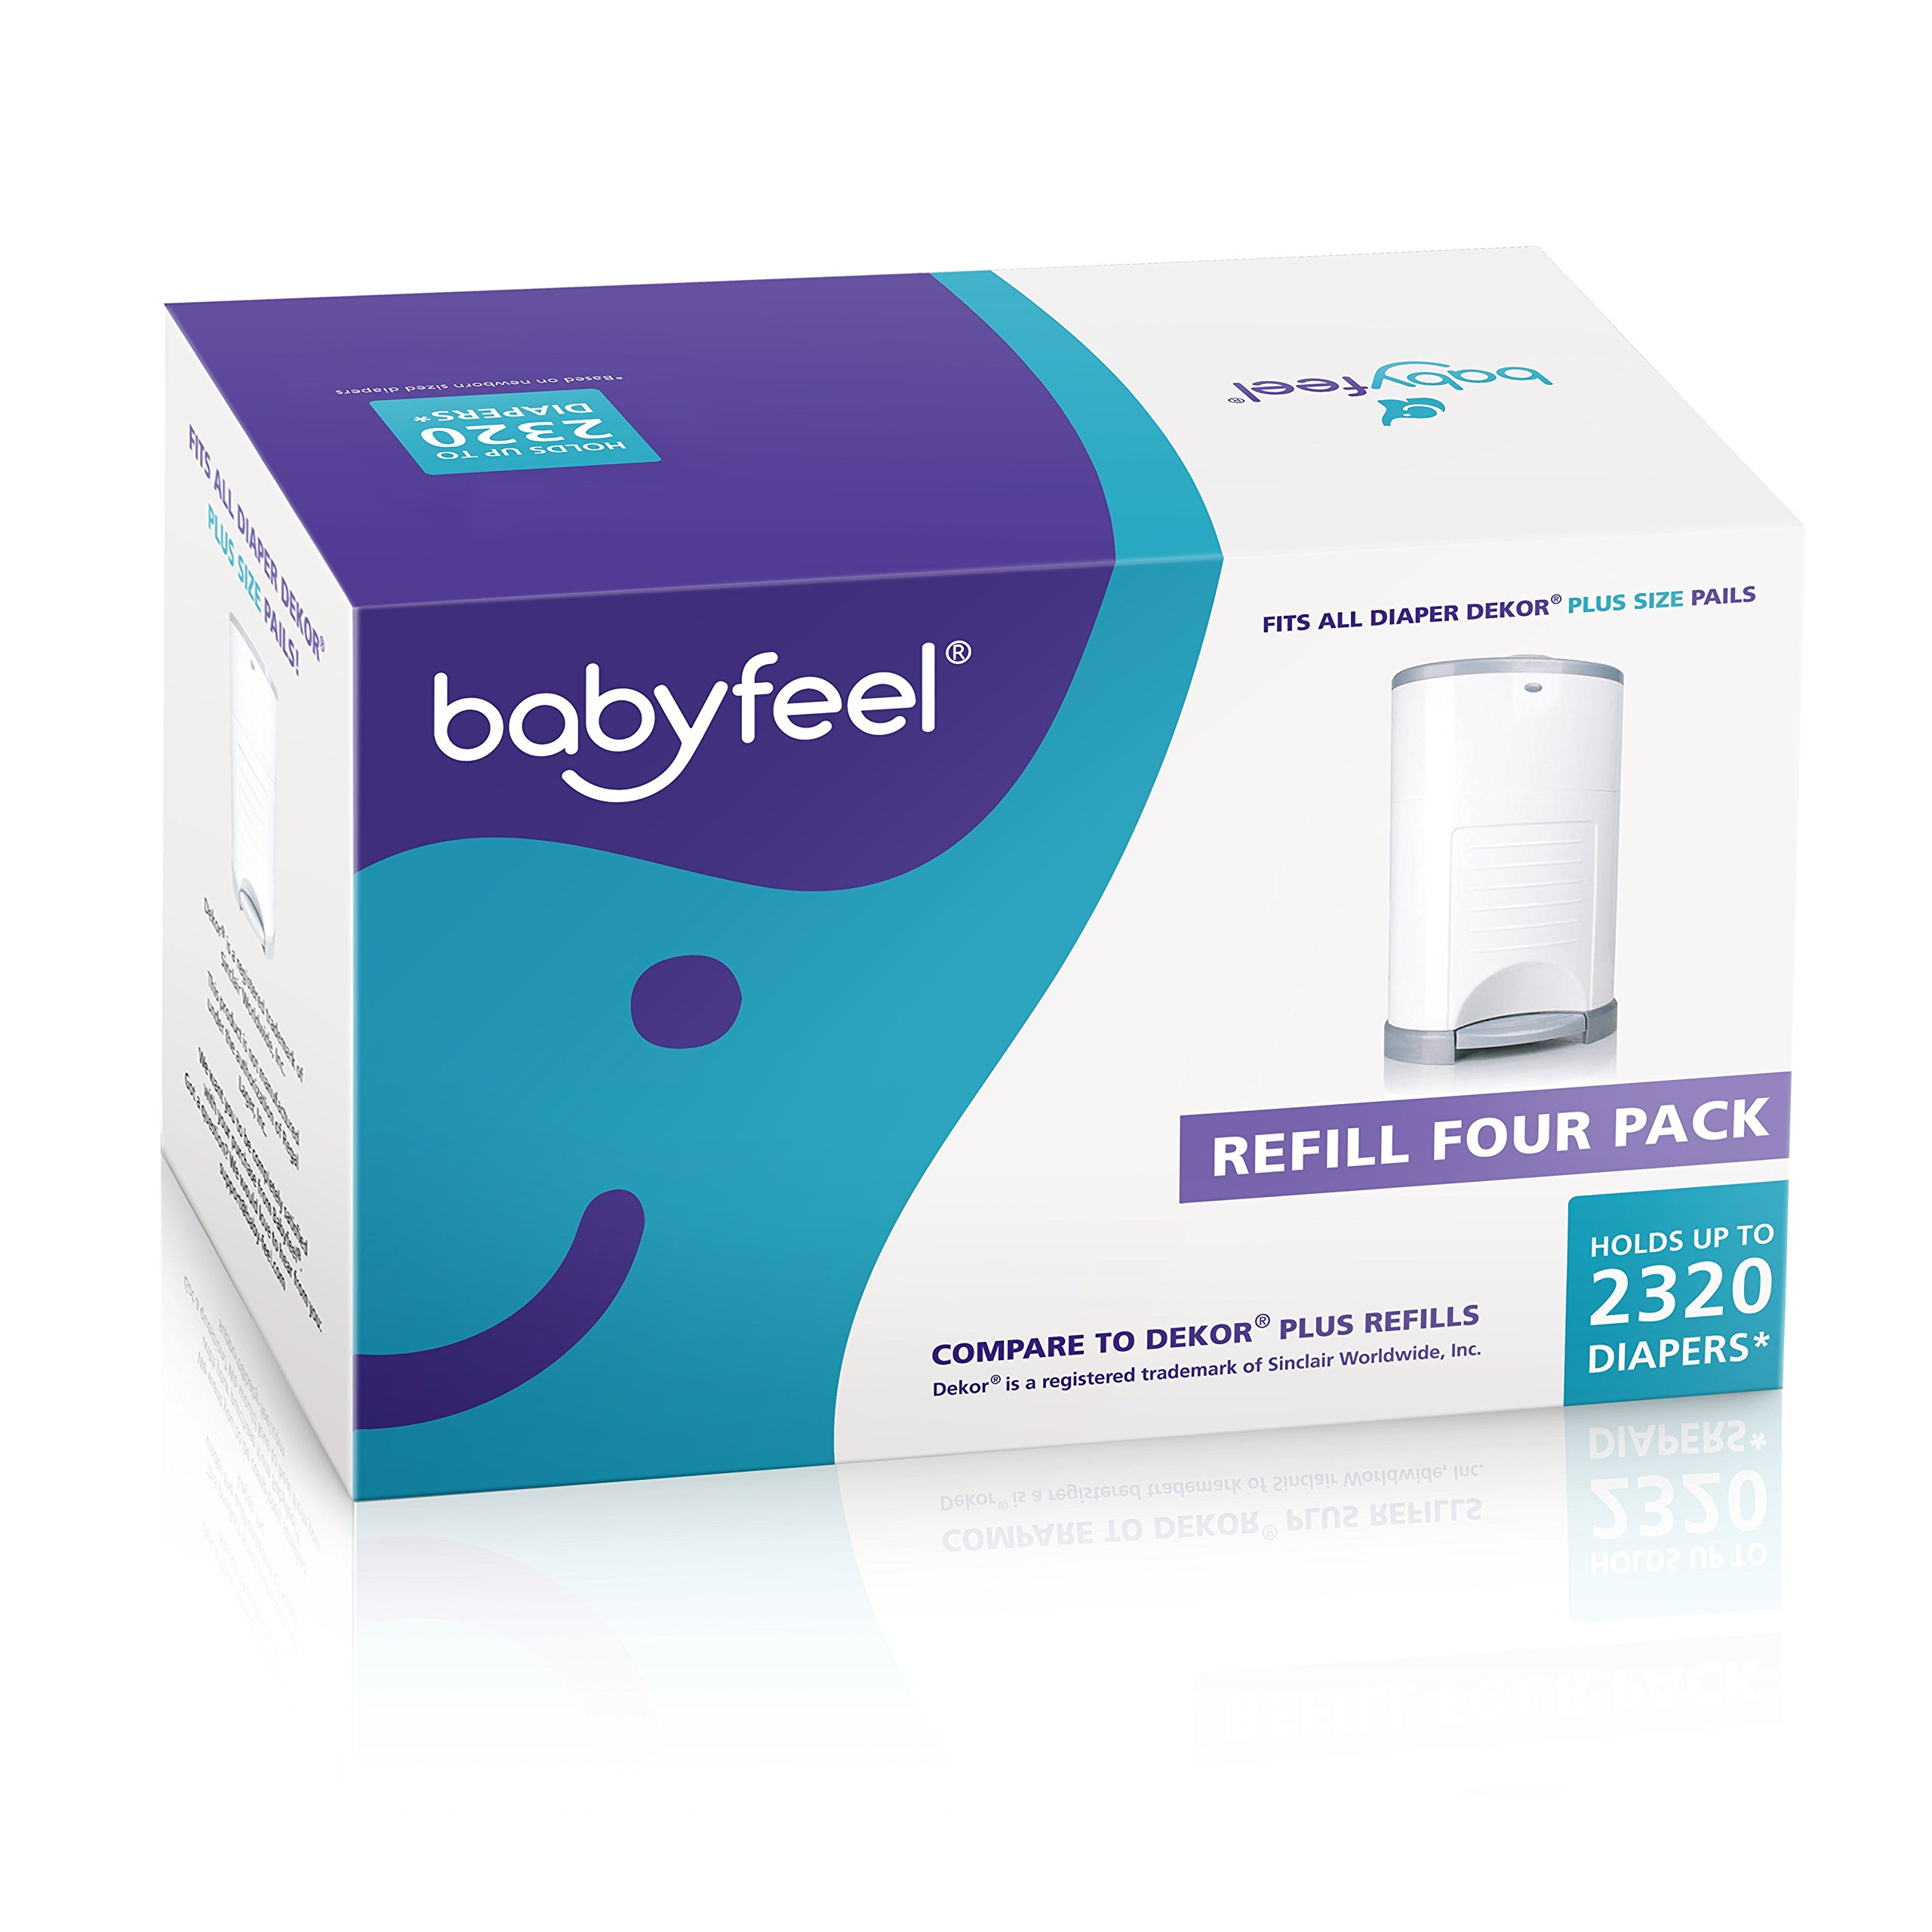 Babyfeel - 4 Count Refill - Fits Dekor Plus Diaper Pails - The Thickest Diaper Dekor Plus Refills - New Powder Scent - Powerful Odor Elimination - Holds up to 2320 Diapers - Strong and Durable